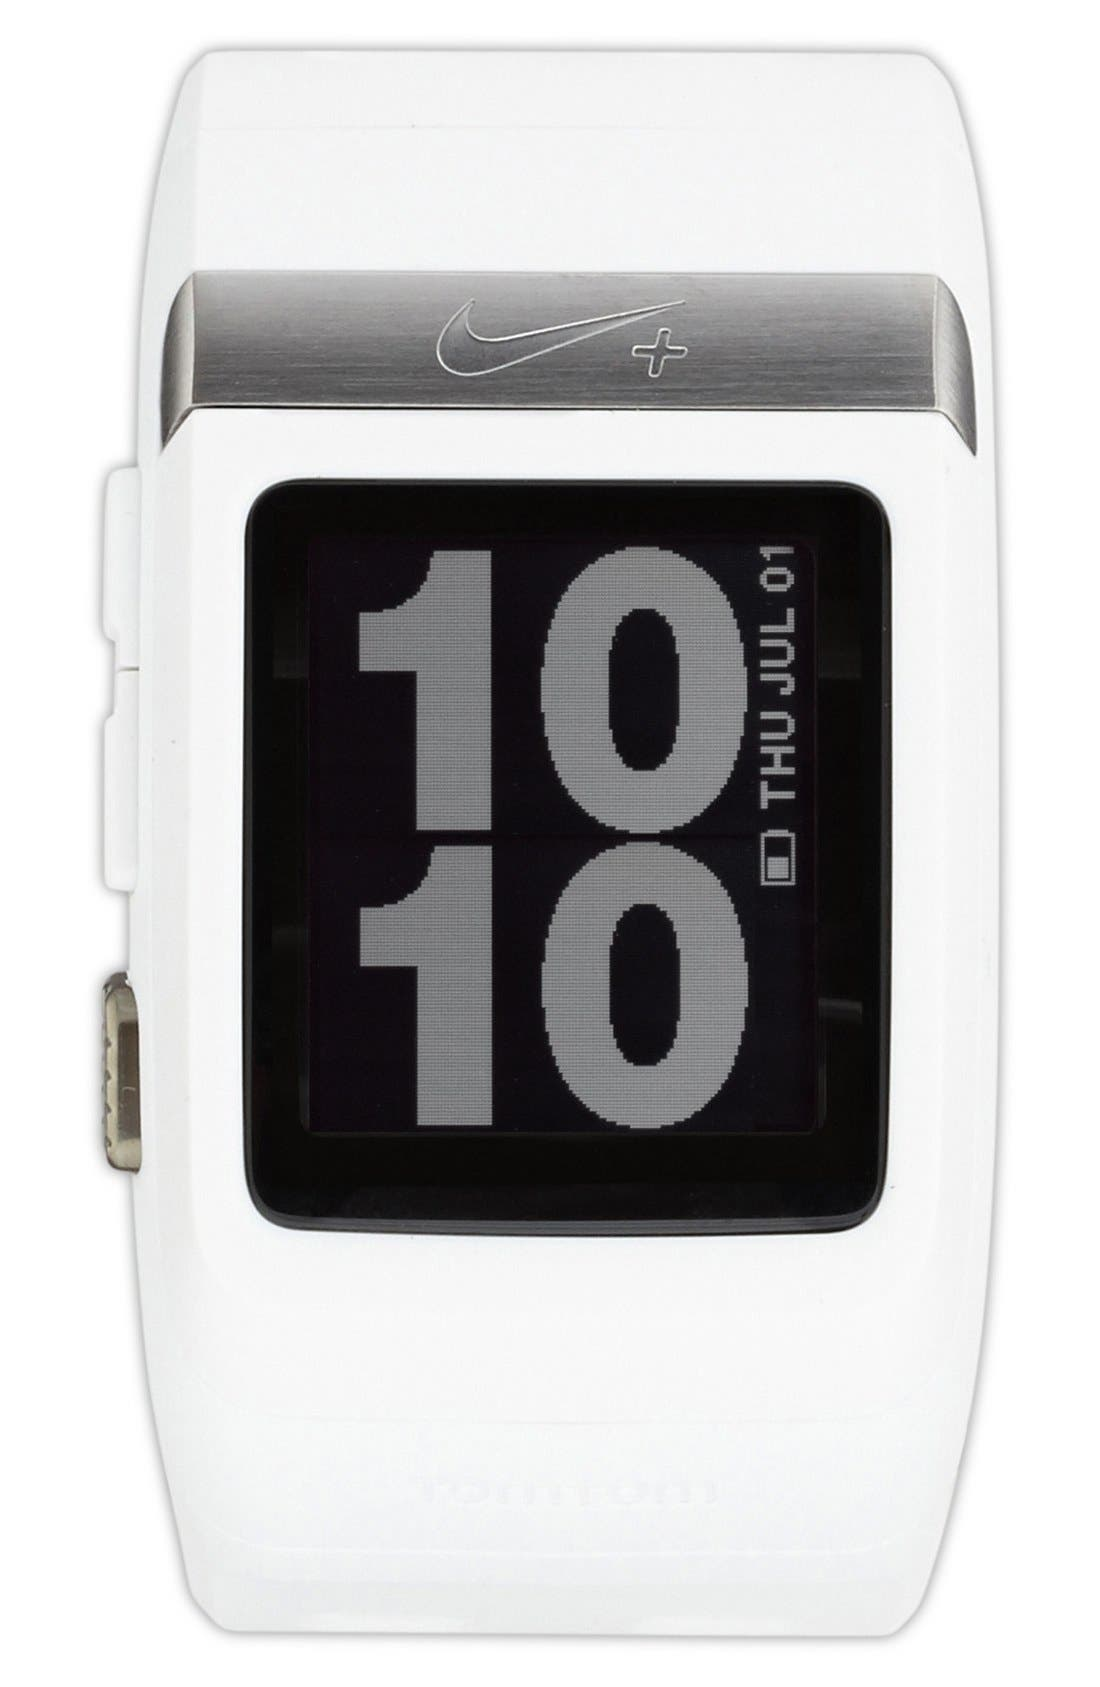 Main Image - Nike+ Sport Watch GPS, 31mm x 38mm